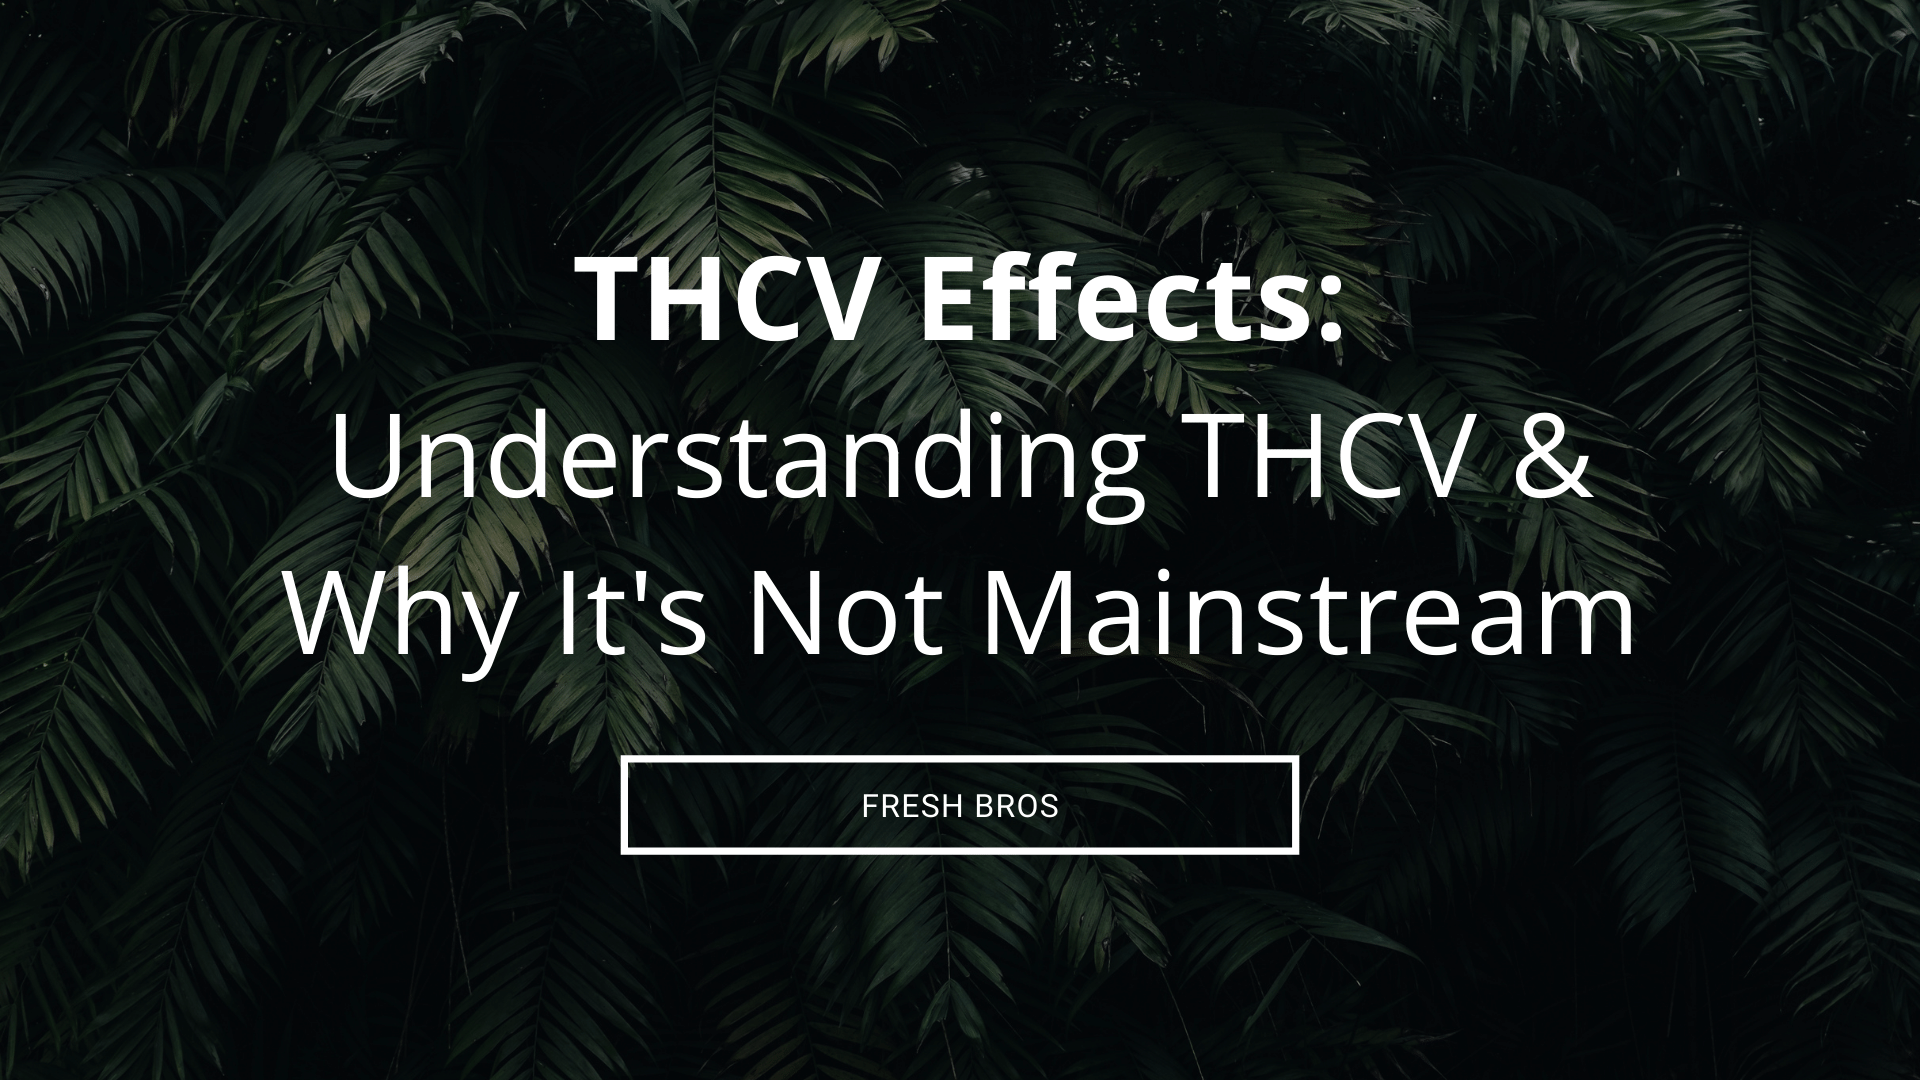 THCV Effects: Understanding THCV & Why It's Not A Mainstream Cannabinoid